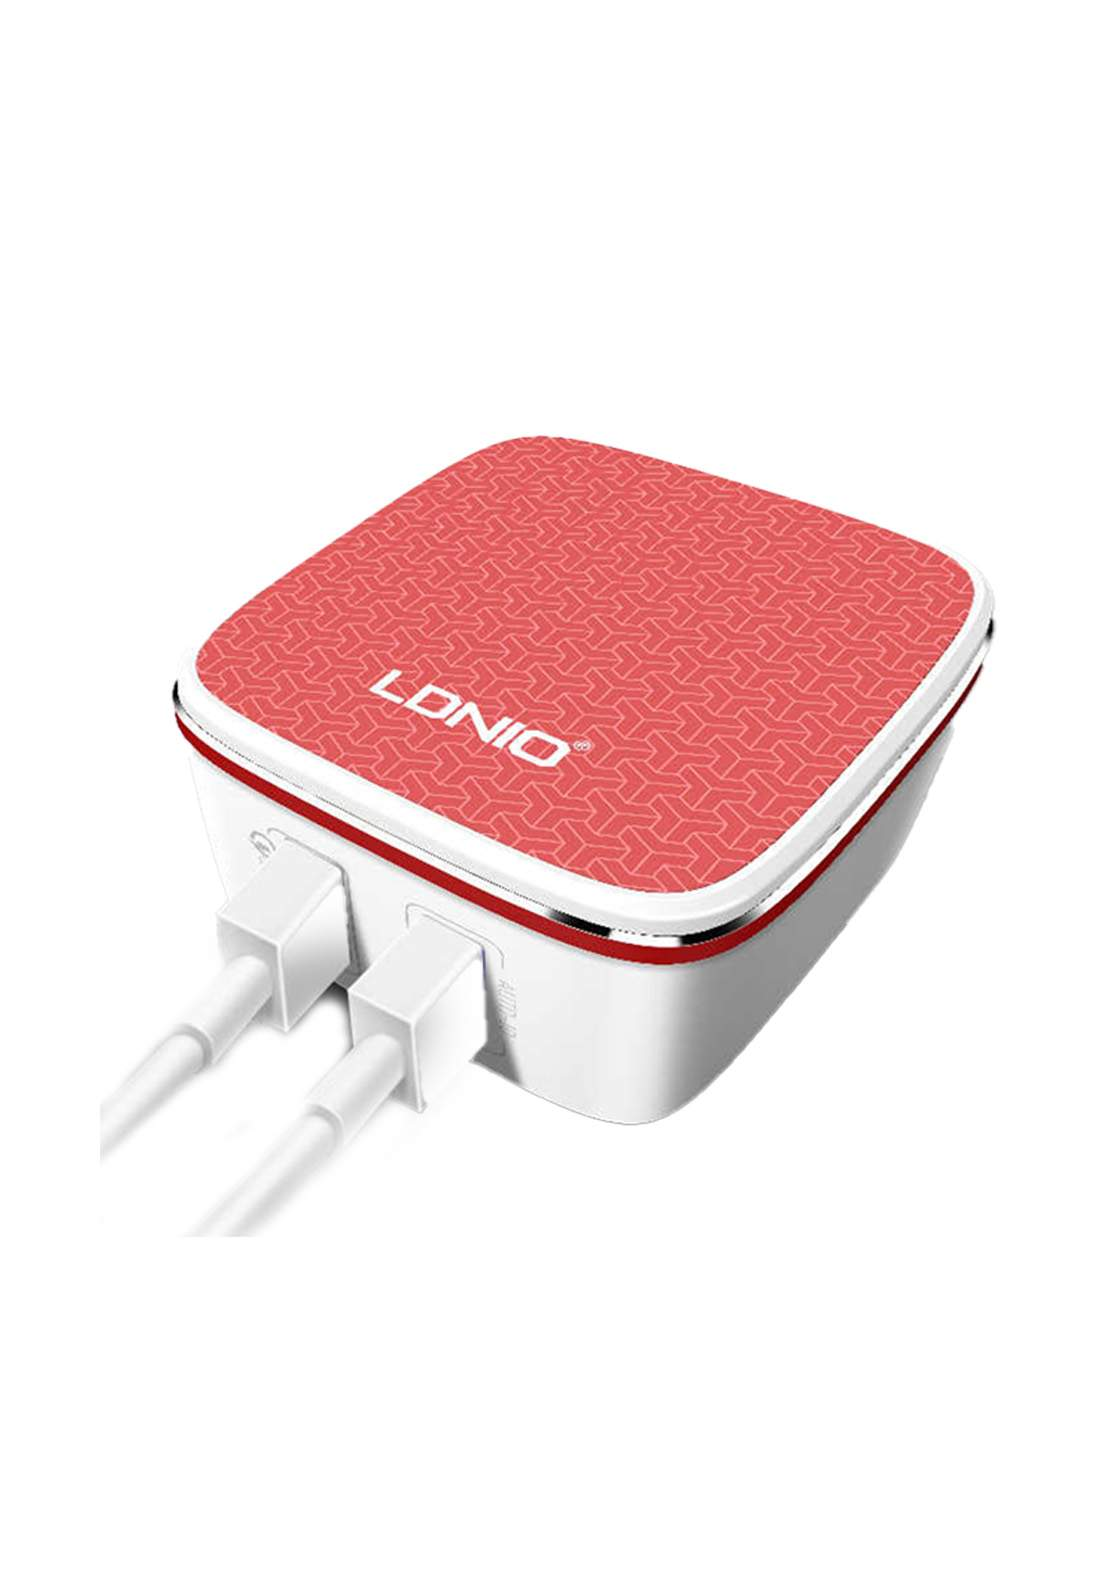 LDNIO Dual USB Port Red Home Charger With One Universal Port And QC 2.0 Port US Plug Data Cable - Red شاحنة